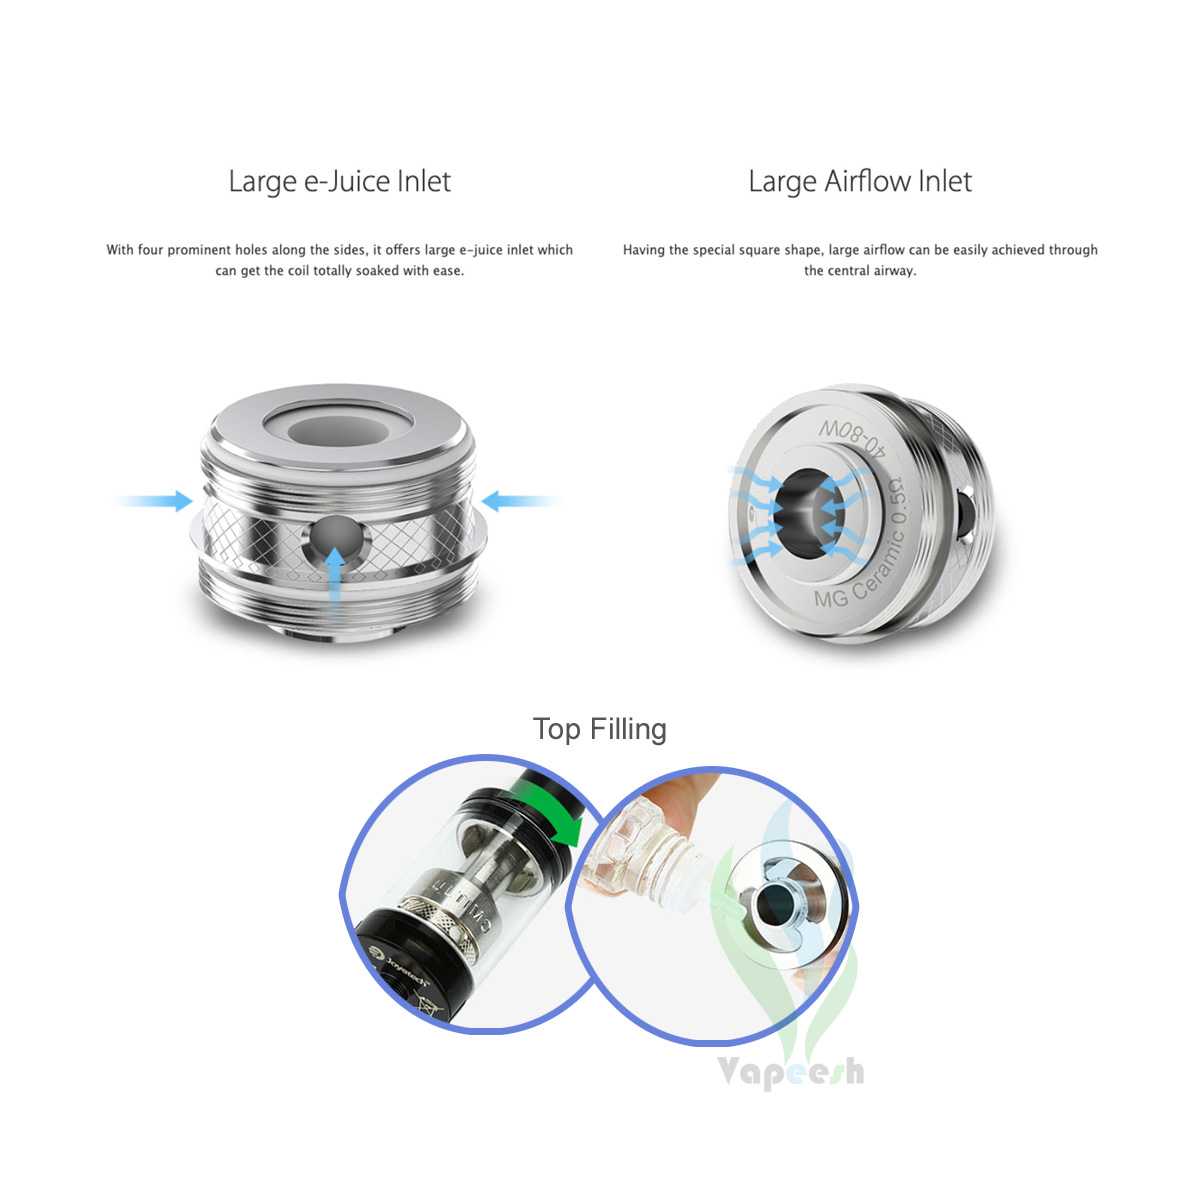 Joyetech ULTIMO Tank Features and Refilling